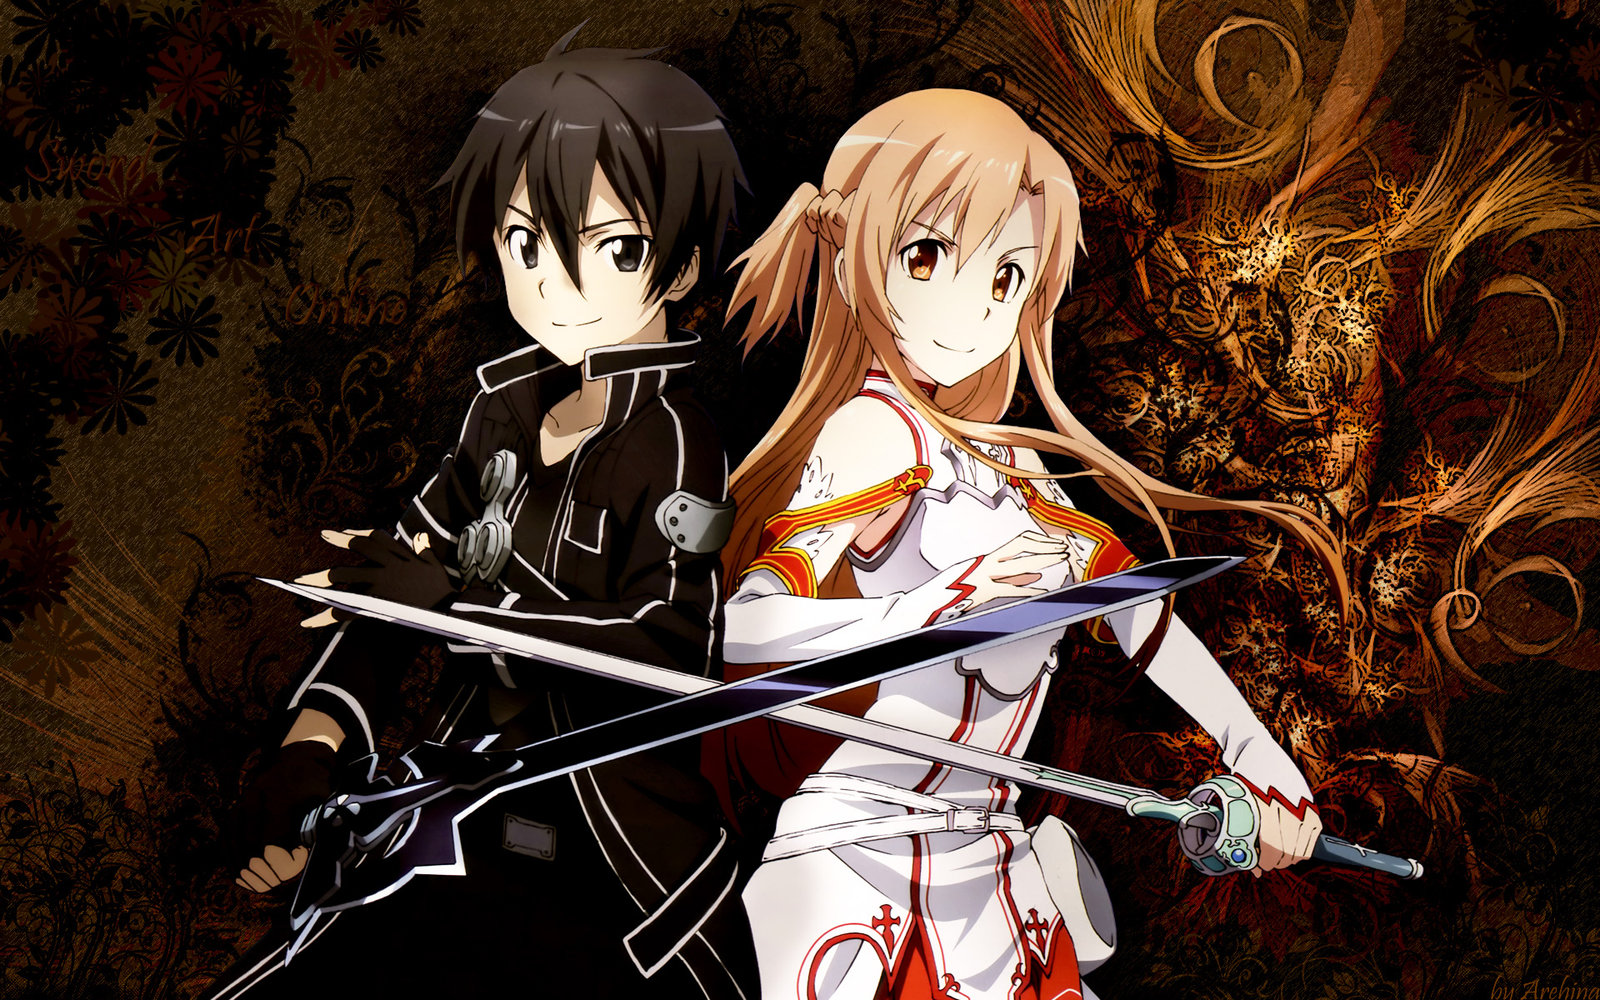 Foto Kirito Dan Asuna 47+] kirito and asuna wallpaper on wallpapersafari